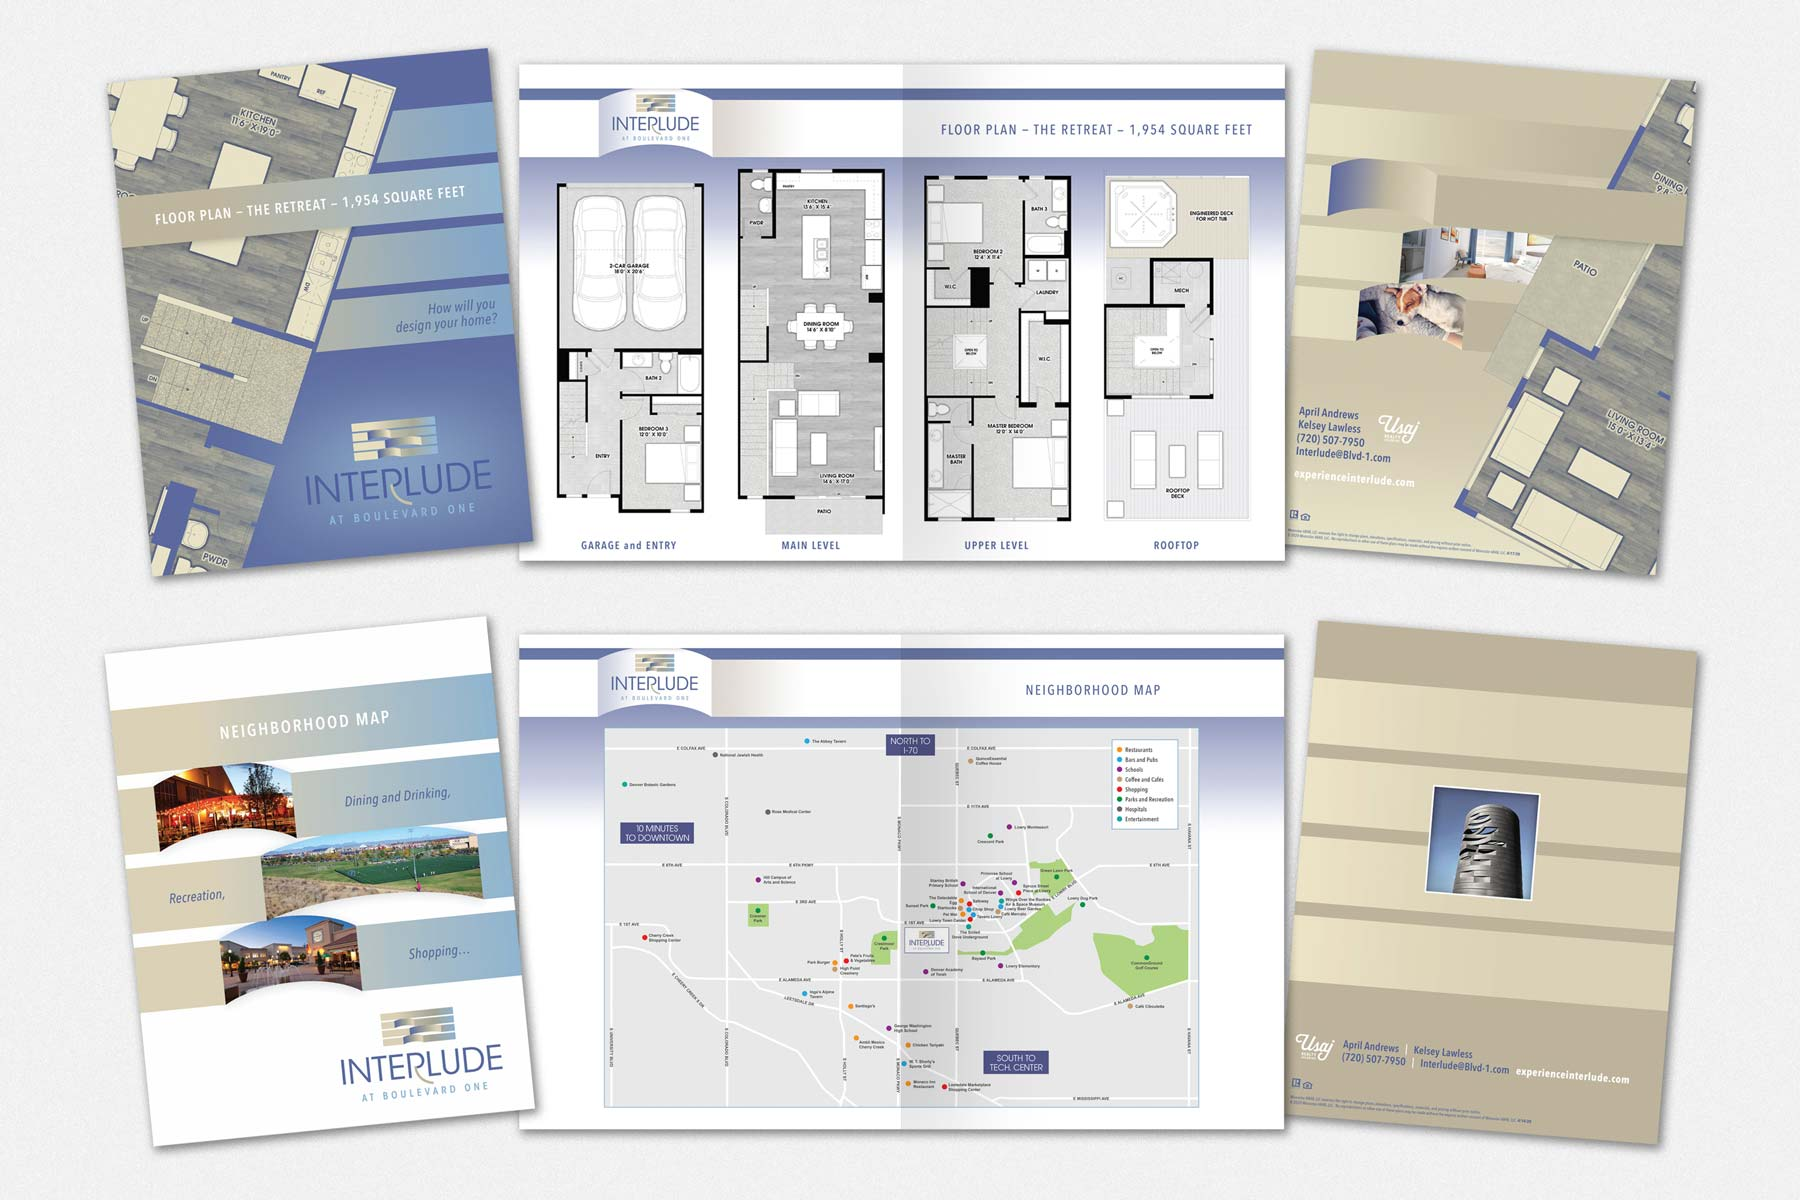 Floor Plan Brochure for Interlude at Boulevard One in Lowry